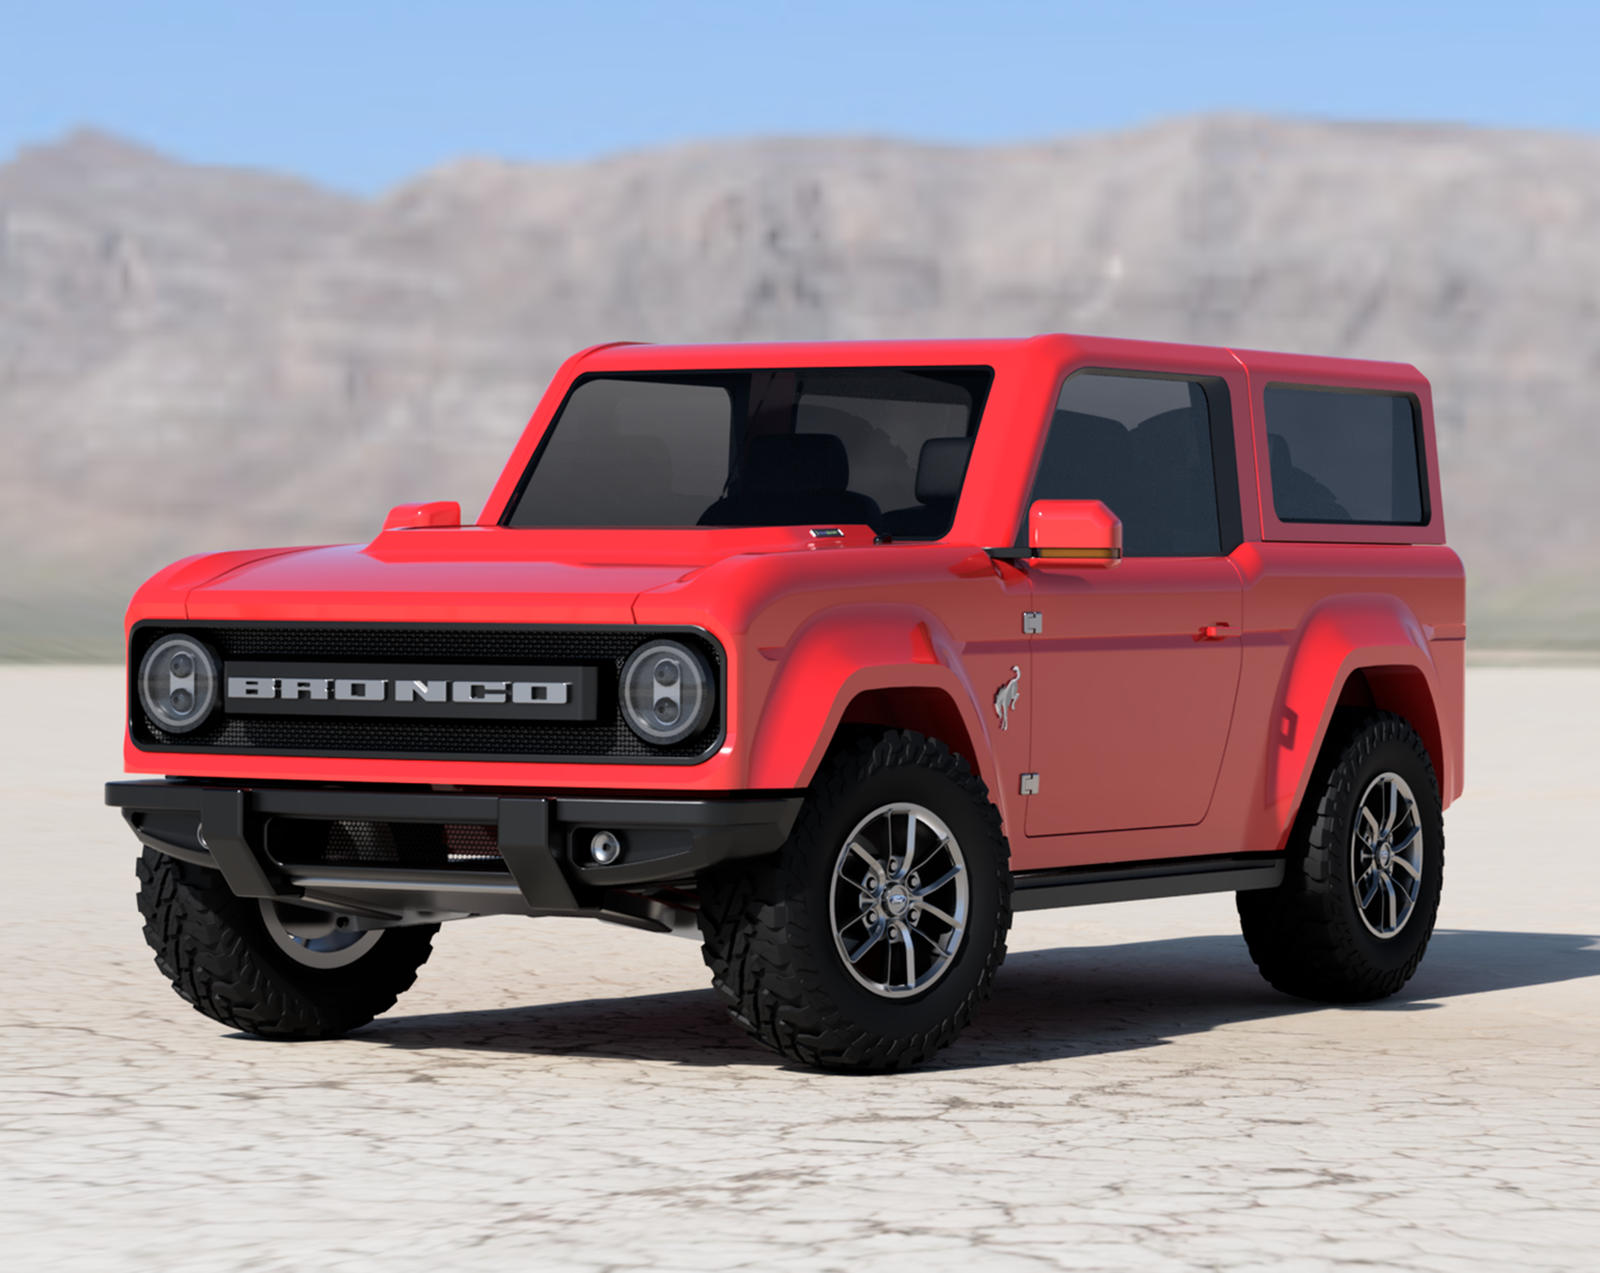 Best Look Yet At 2021 Ford Bronco